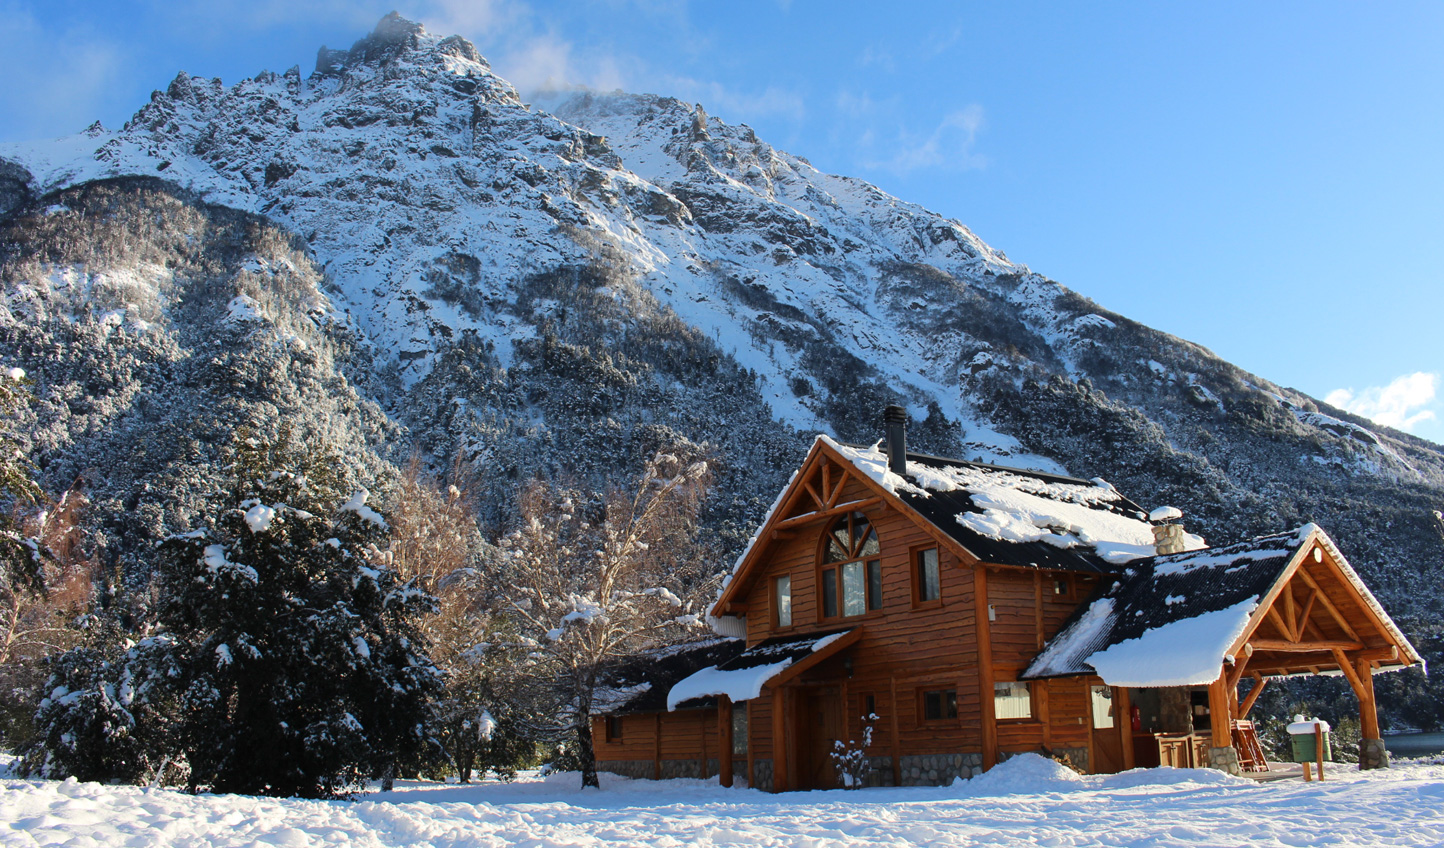 Wooden cabins with traditional designs and cosy fireplaces